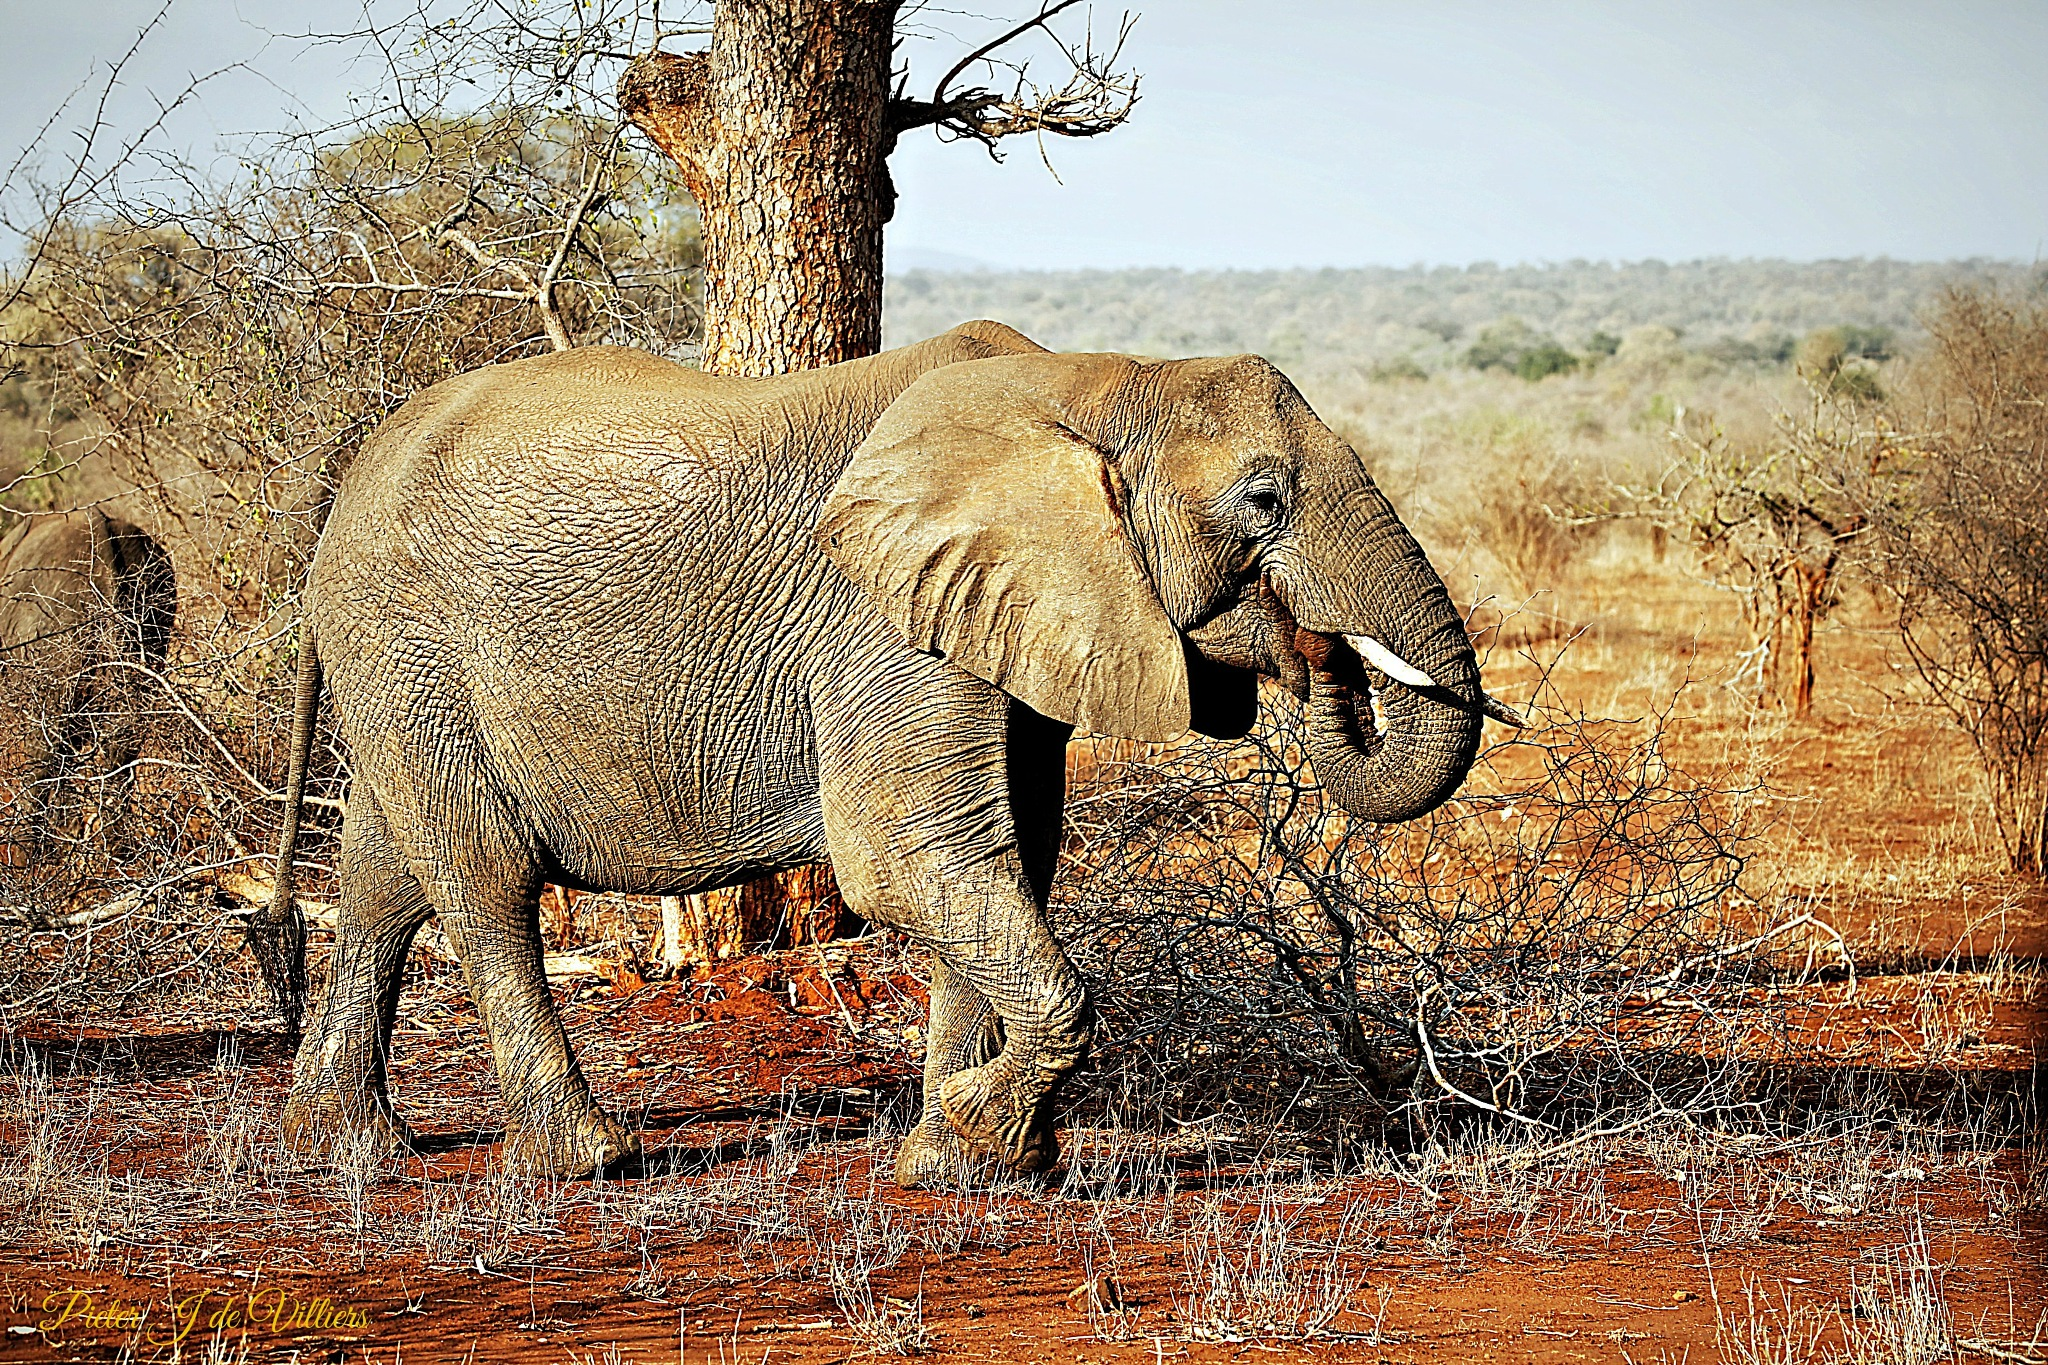 Young Elephant by Pieter J de Villiers